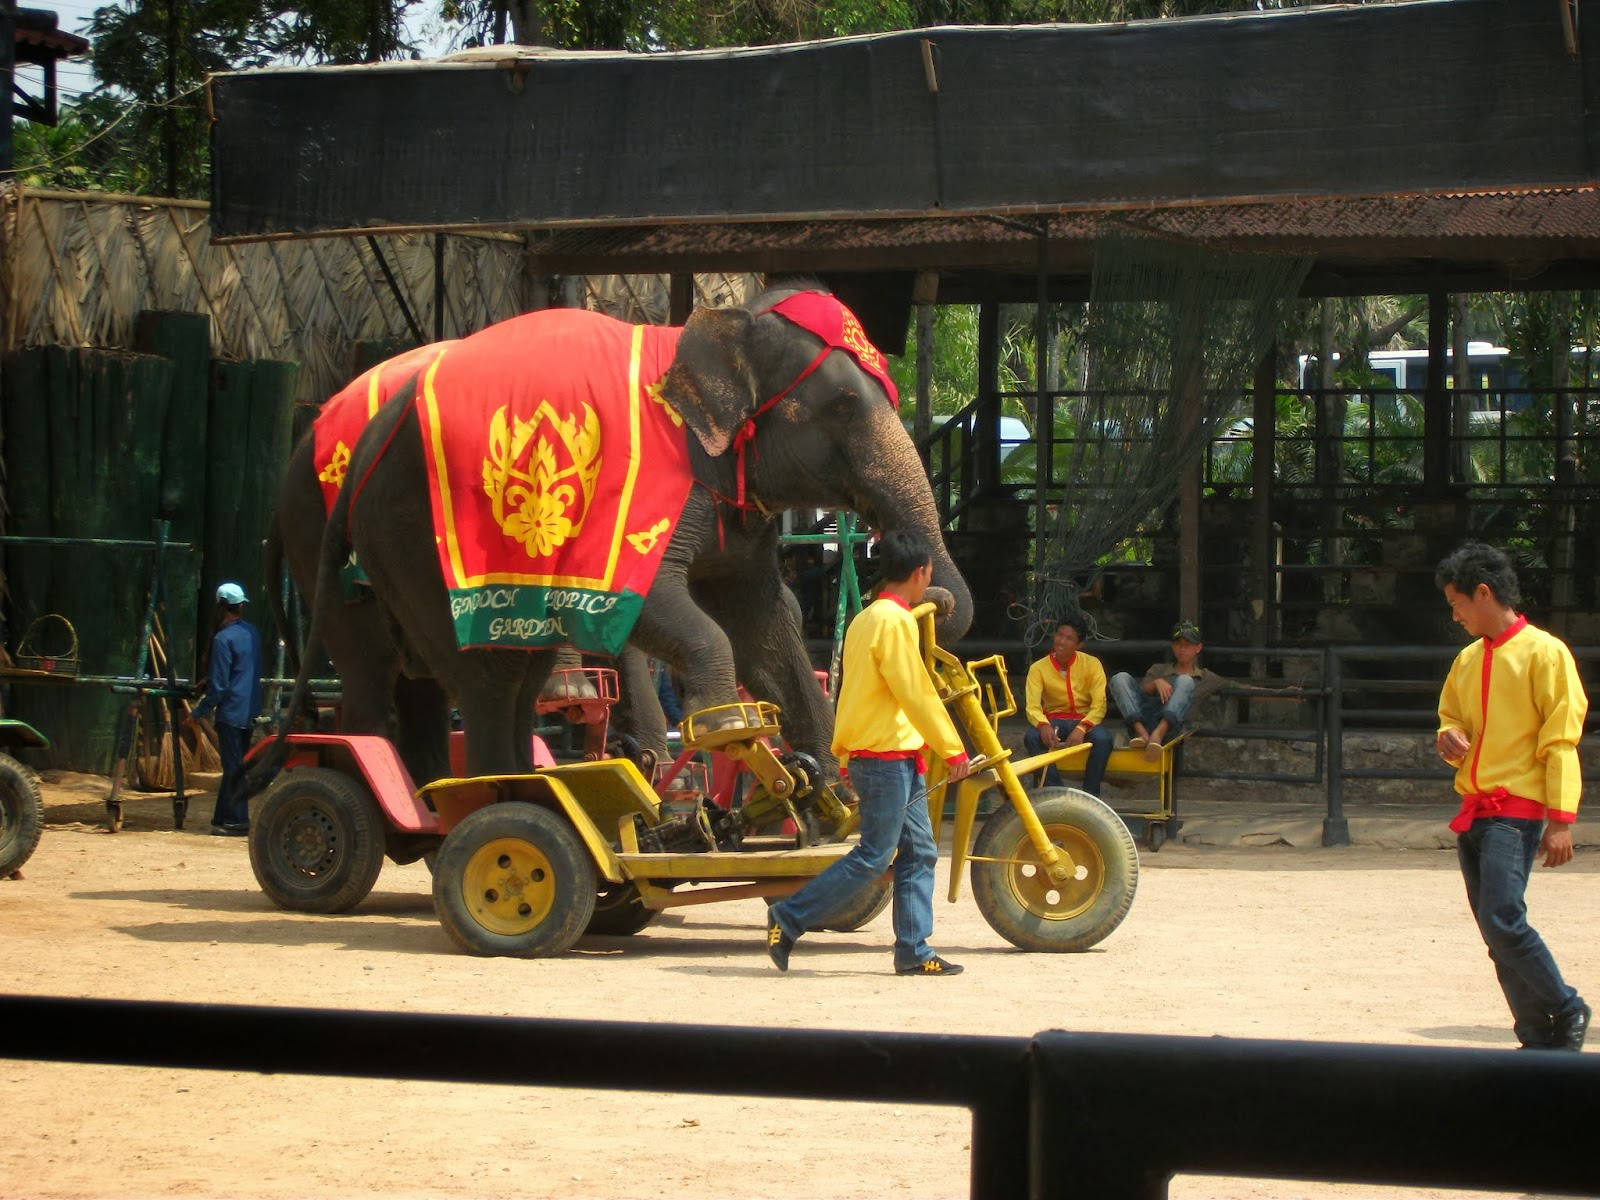 cycling skill of an elephant at Nong Nooch Tropical Garden